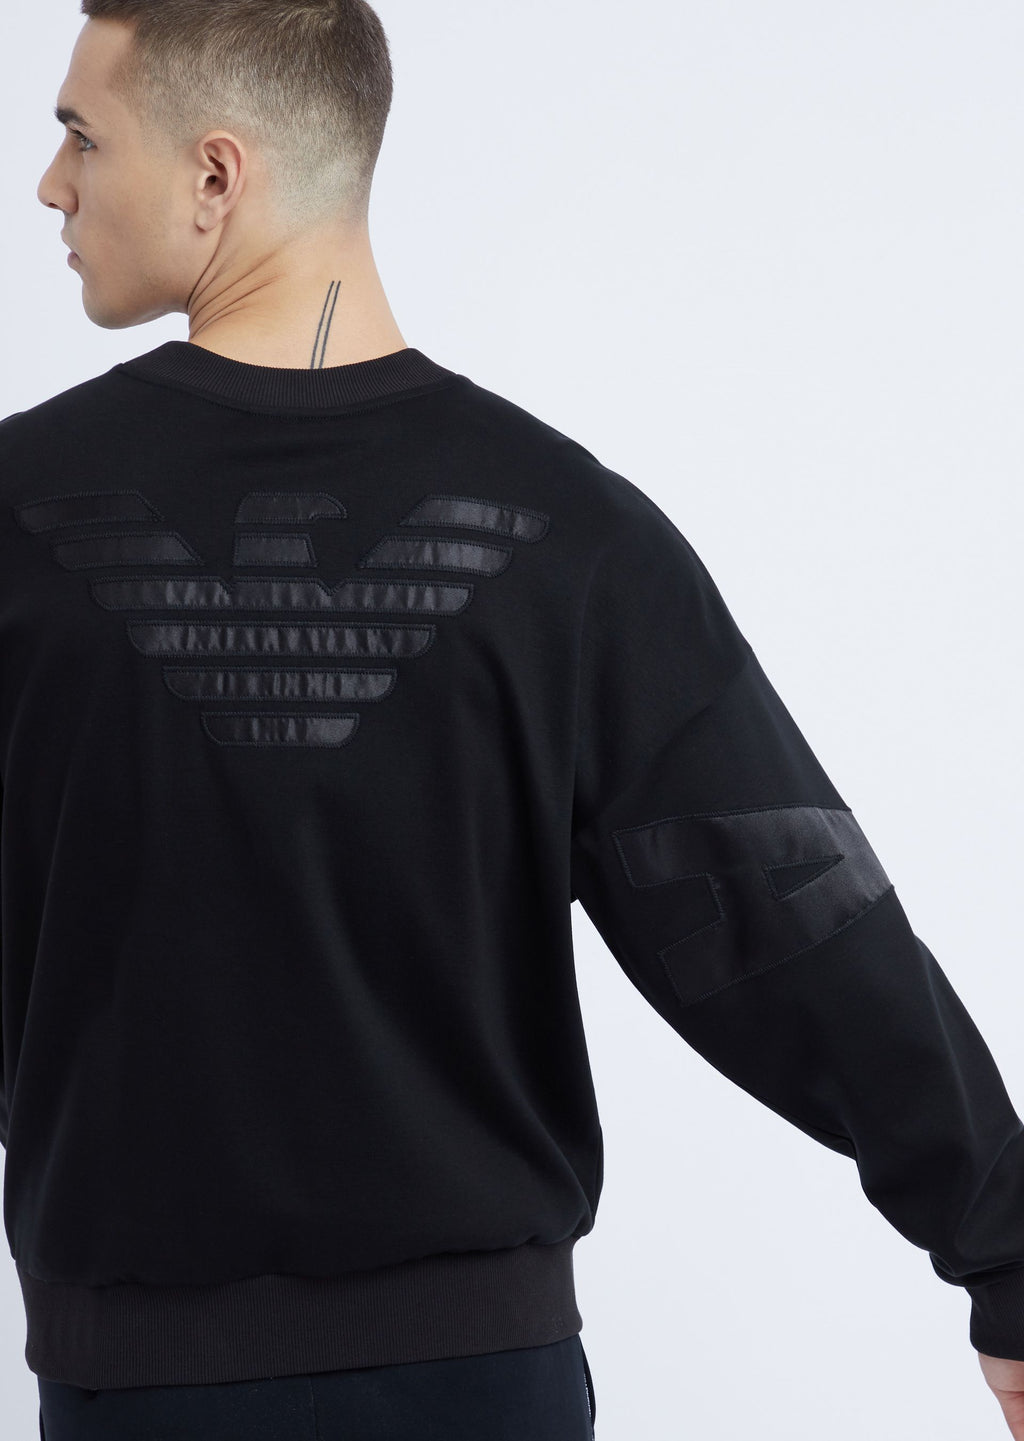 Emporio Armani Interlock Sweatshirt